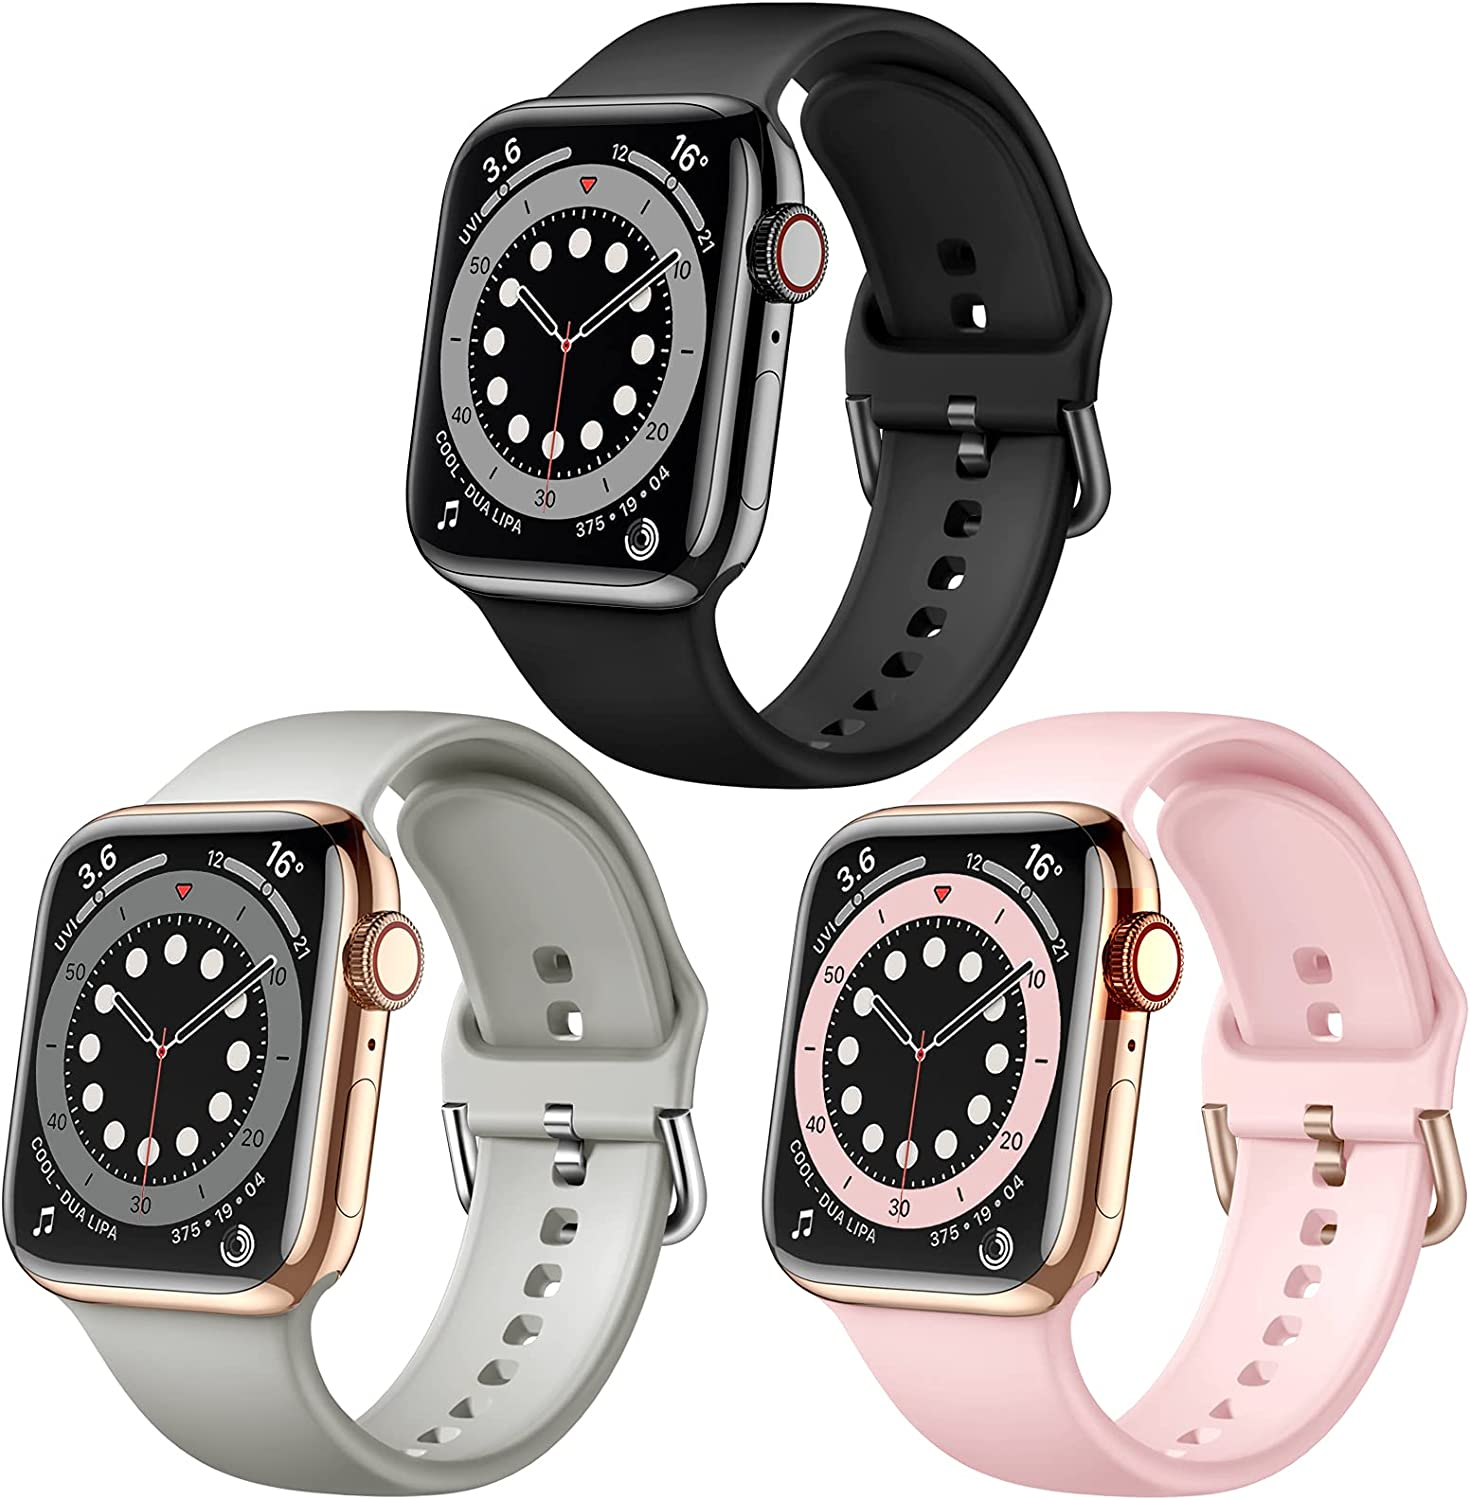 Maledan Compatible with Apple Watch Band 40mm 38mm 42mm 44mm Women Men, 3 Pack Soft Silicone Sport Bands Replacement Strap Accessories for iWatch Series SE 6 5 4 3 2 1, Black/Grey/Pink